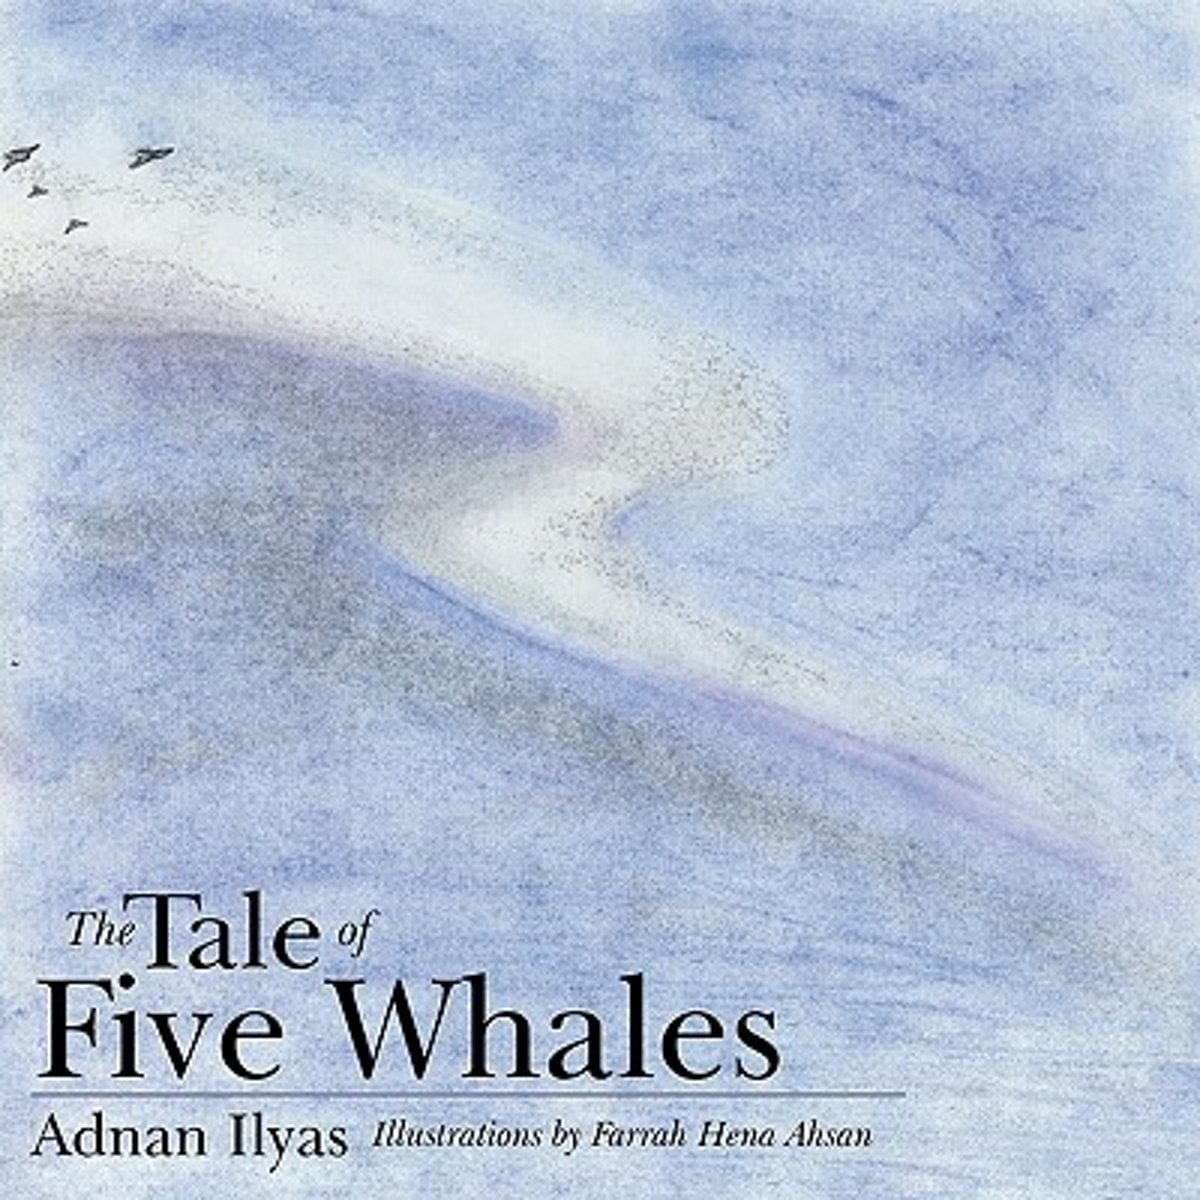 The Tale of Five Whales